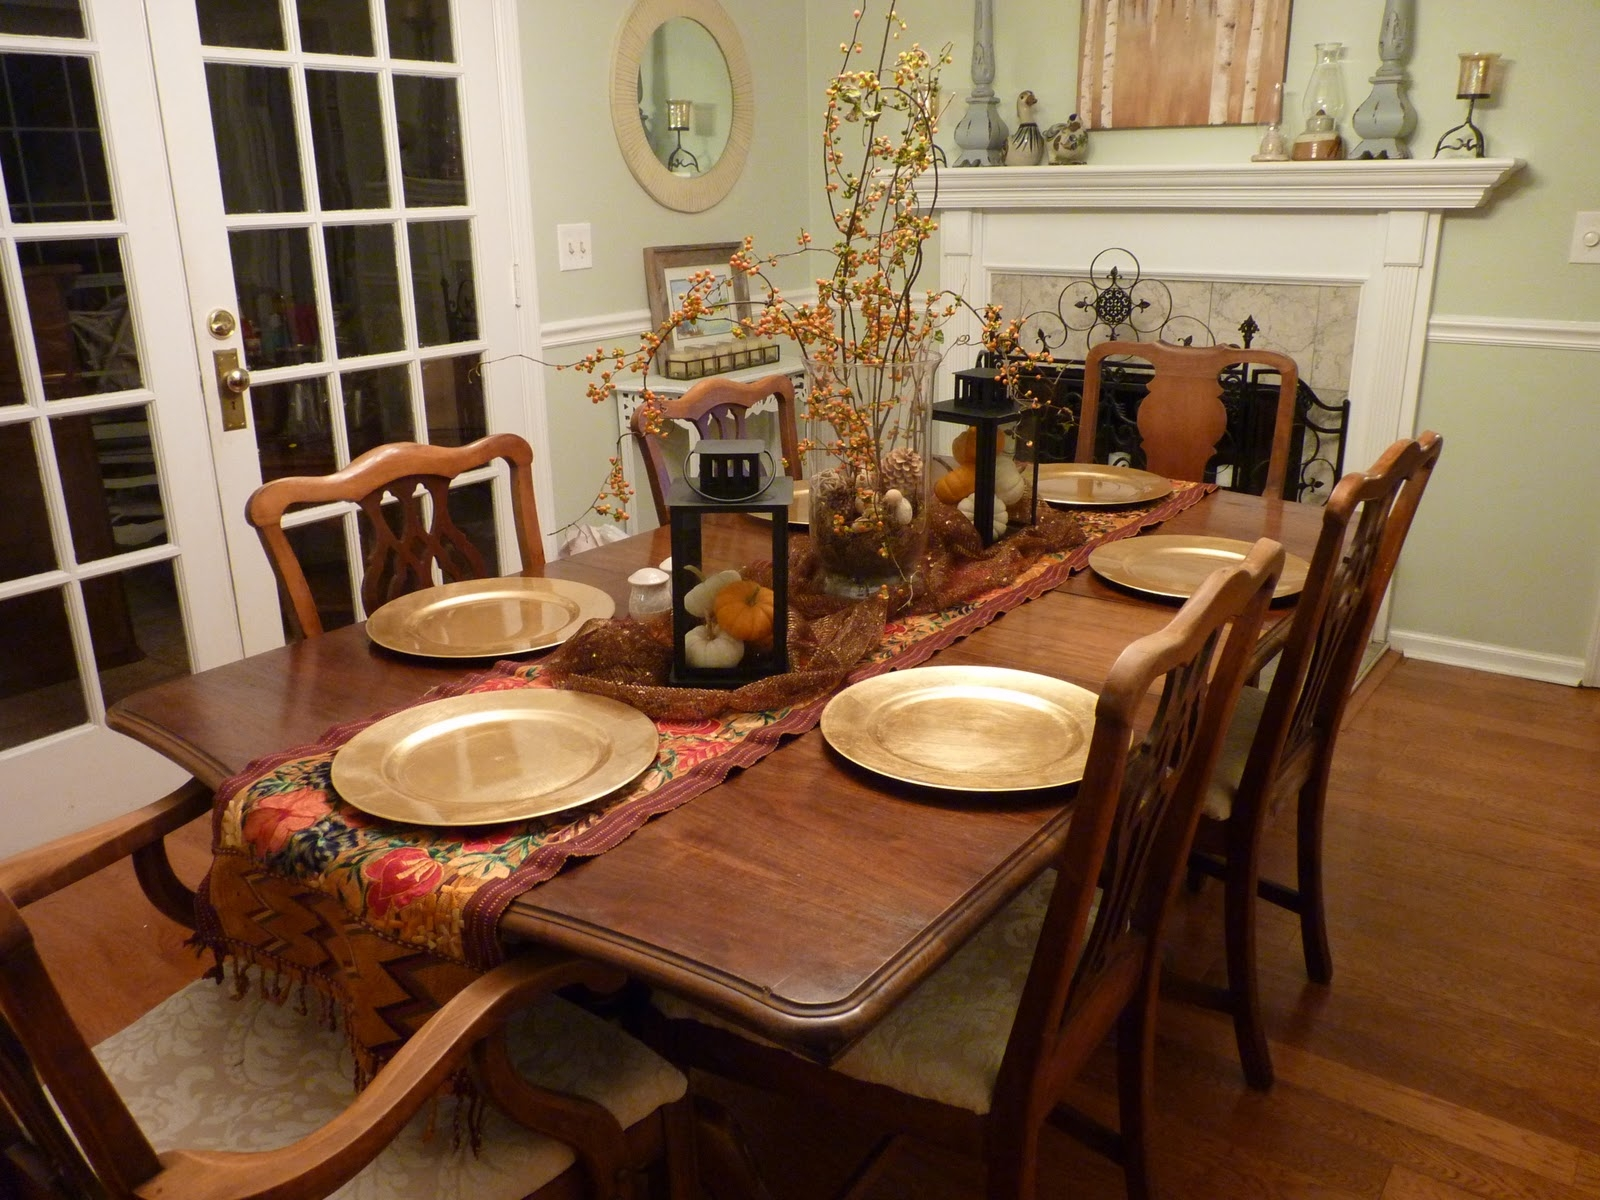 Rustic Centerpieces For Dining Room Tables Sushi Ichimura Decor